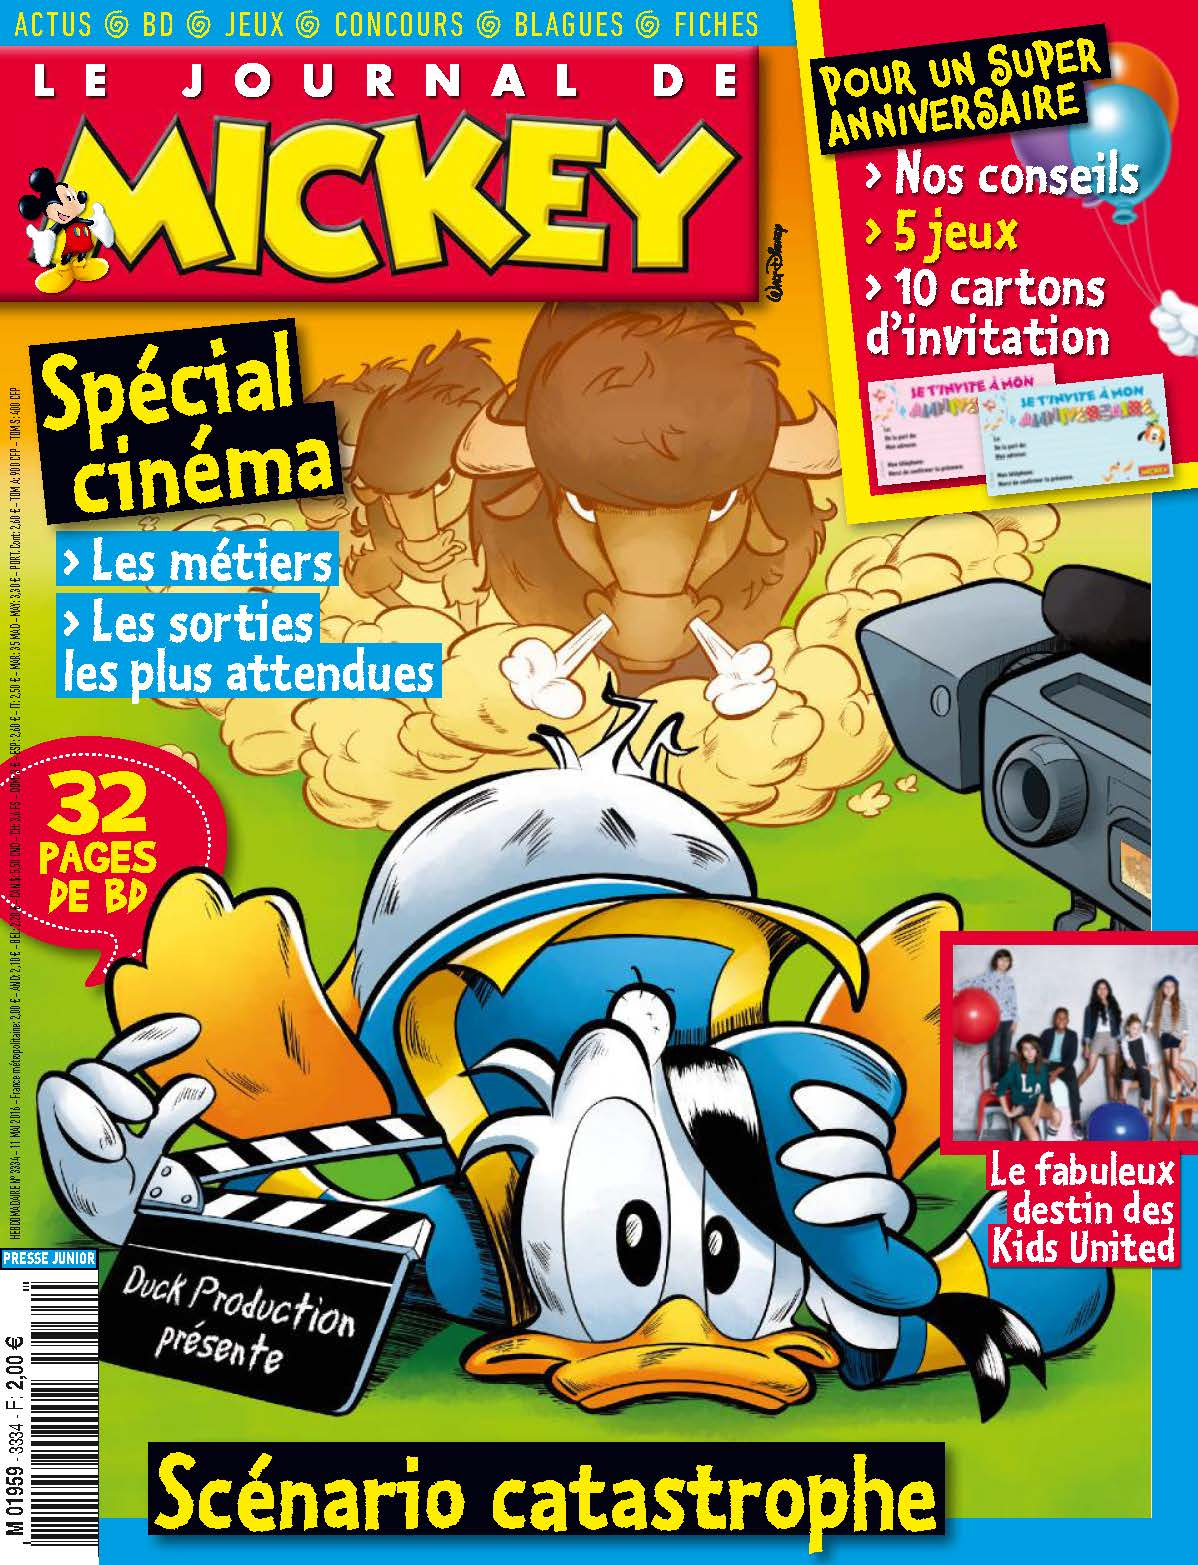 le journal de mickey journal de mickey 3334. Black Bedroom Furniture Sets. Home Design Ideas